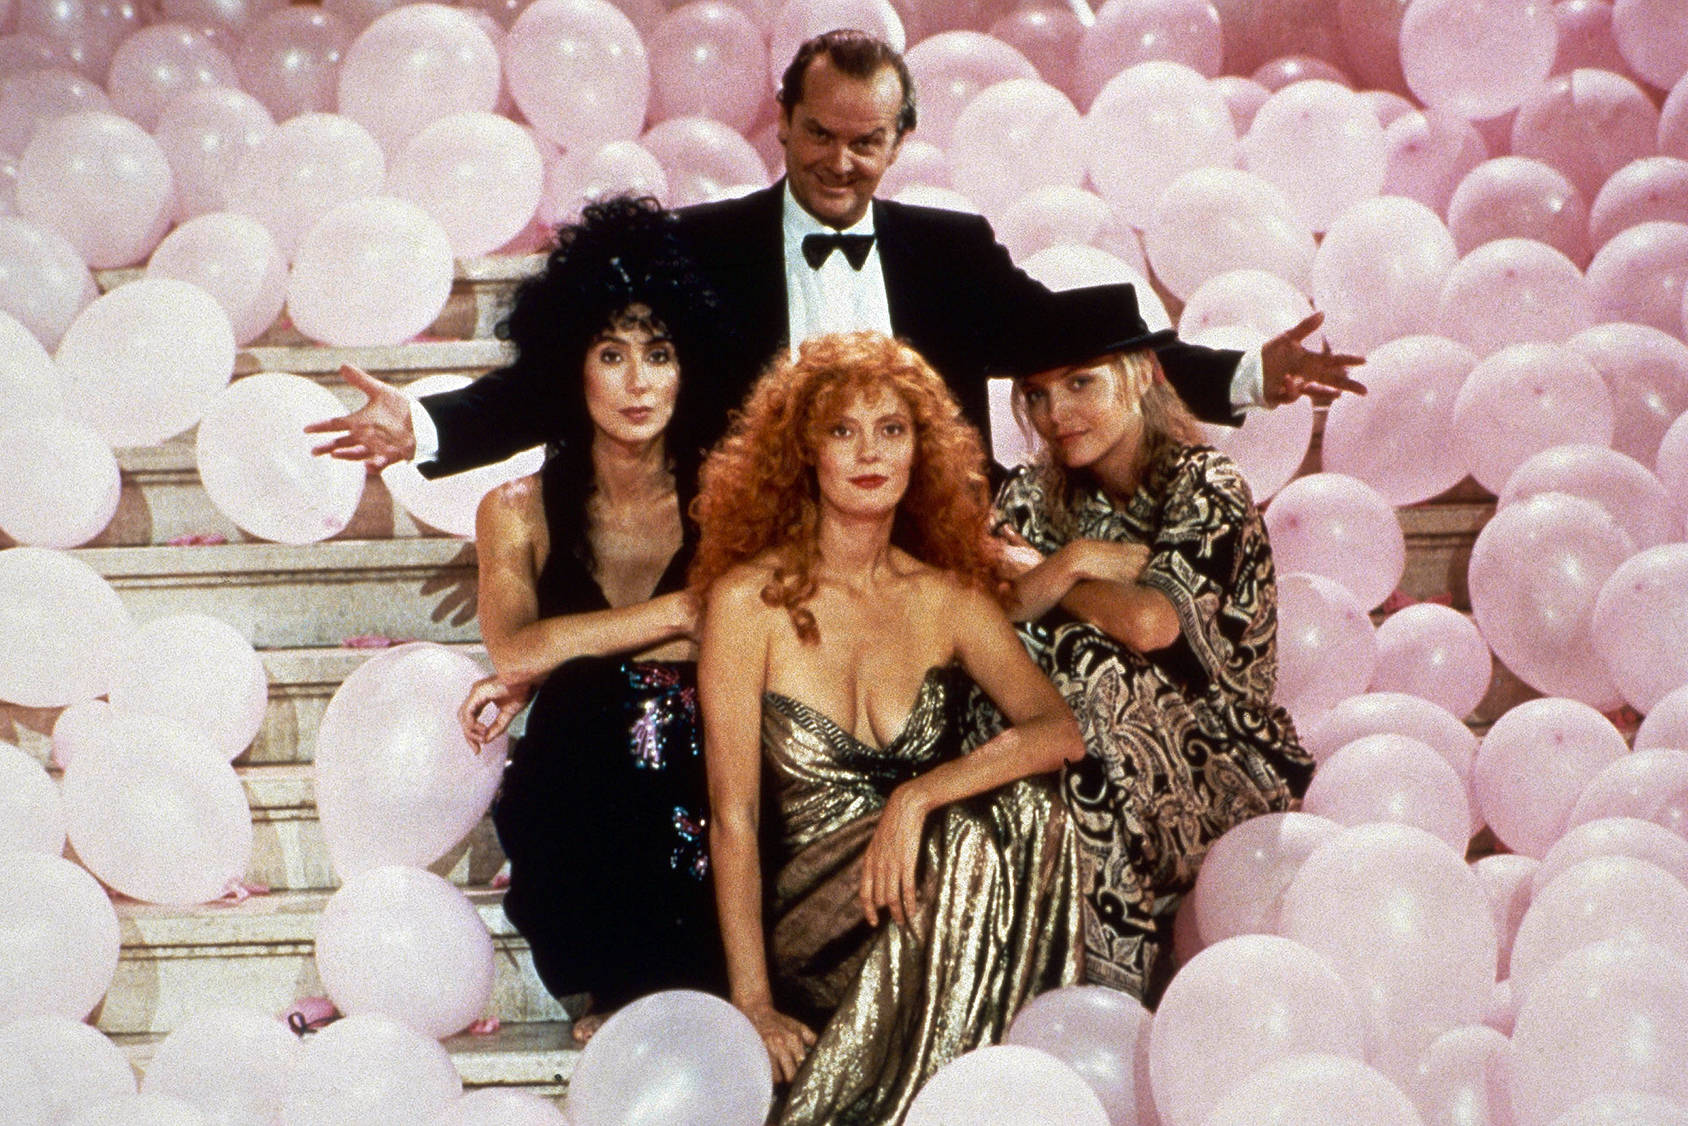 Cher, Susan Sarandon, Michelle Pfeiffer and Jack Nicholson in The Witches of Eastwick, All Over Press.